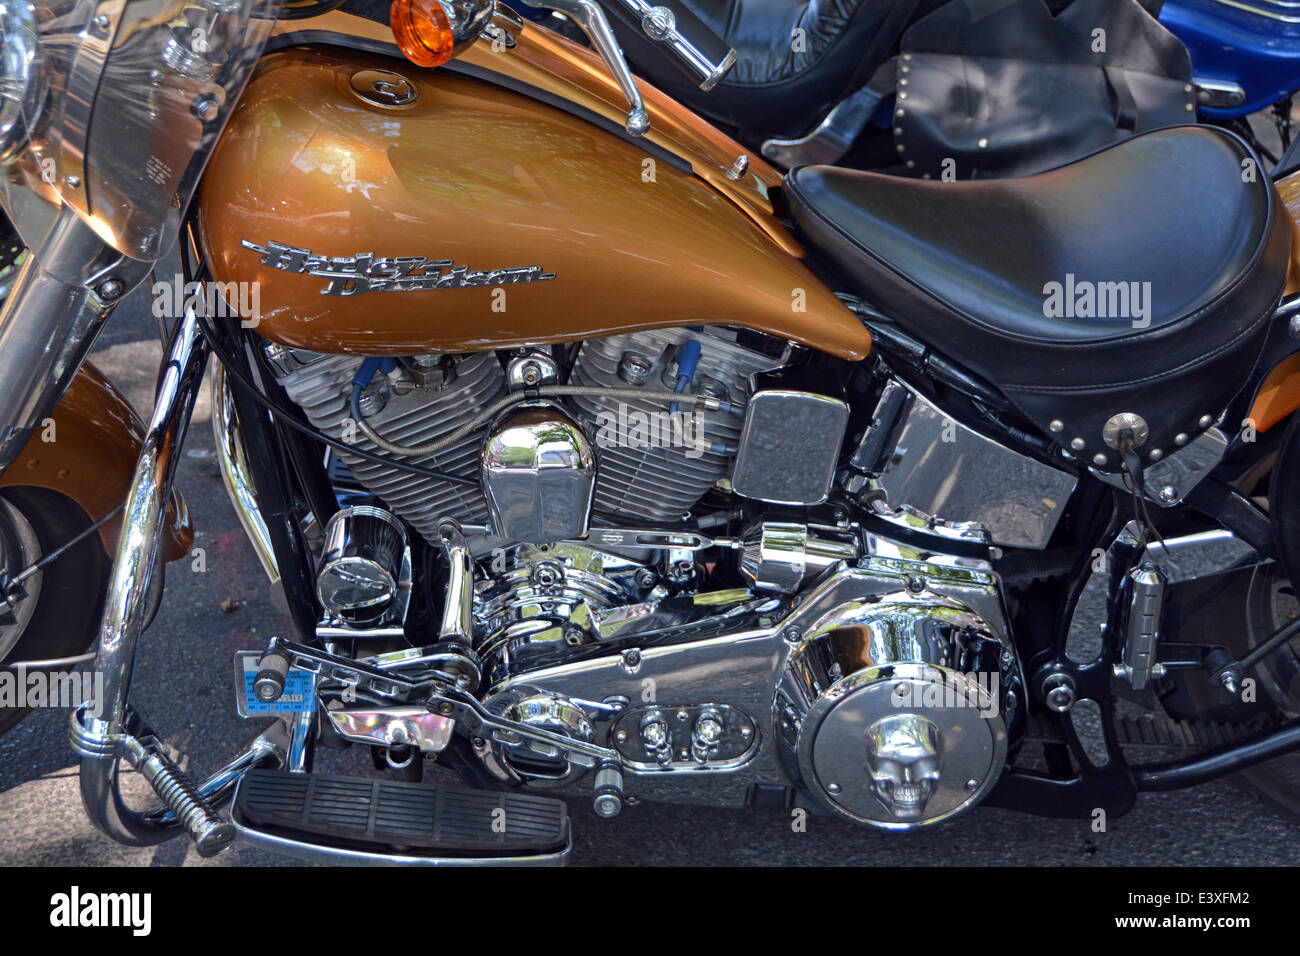 Closeup view of a Harley Davidson Softail motorcycle parked in Downtown Manhattan, New York City - Stock Image